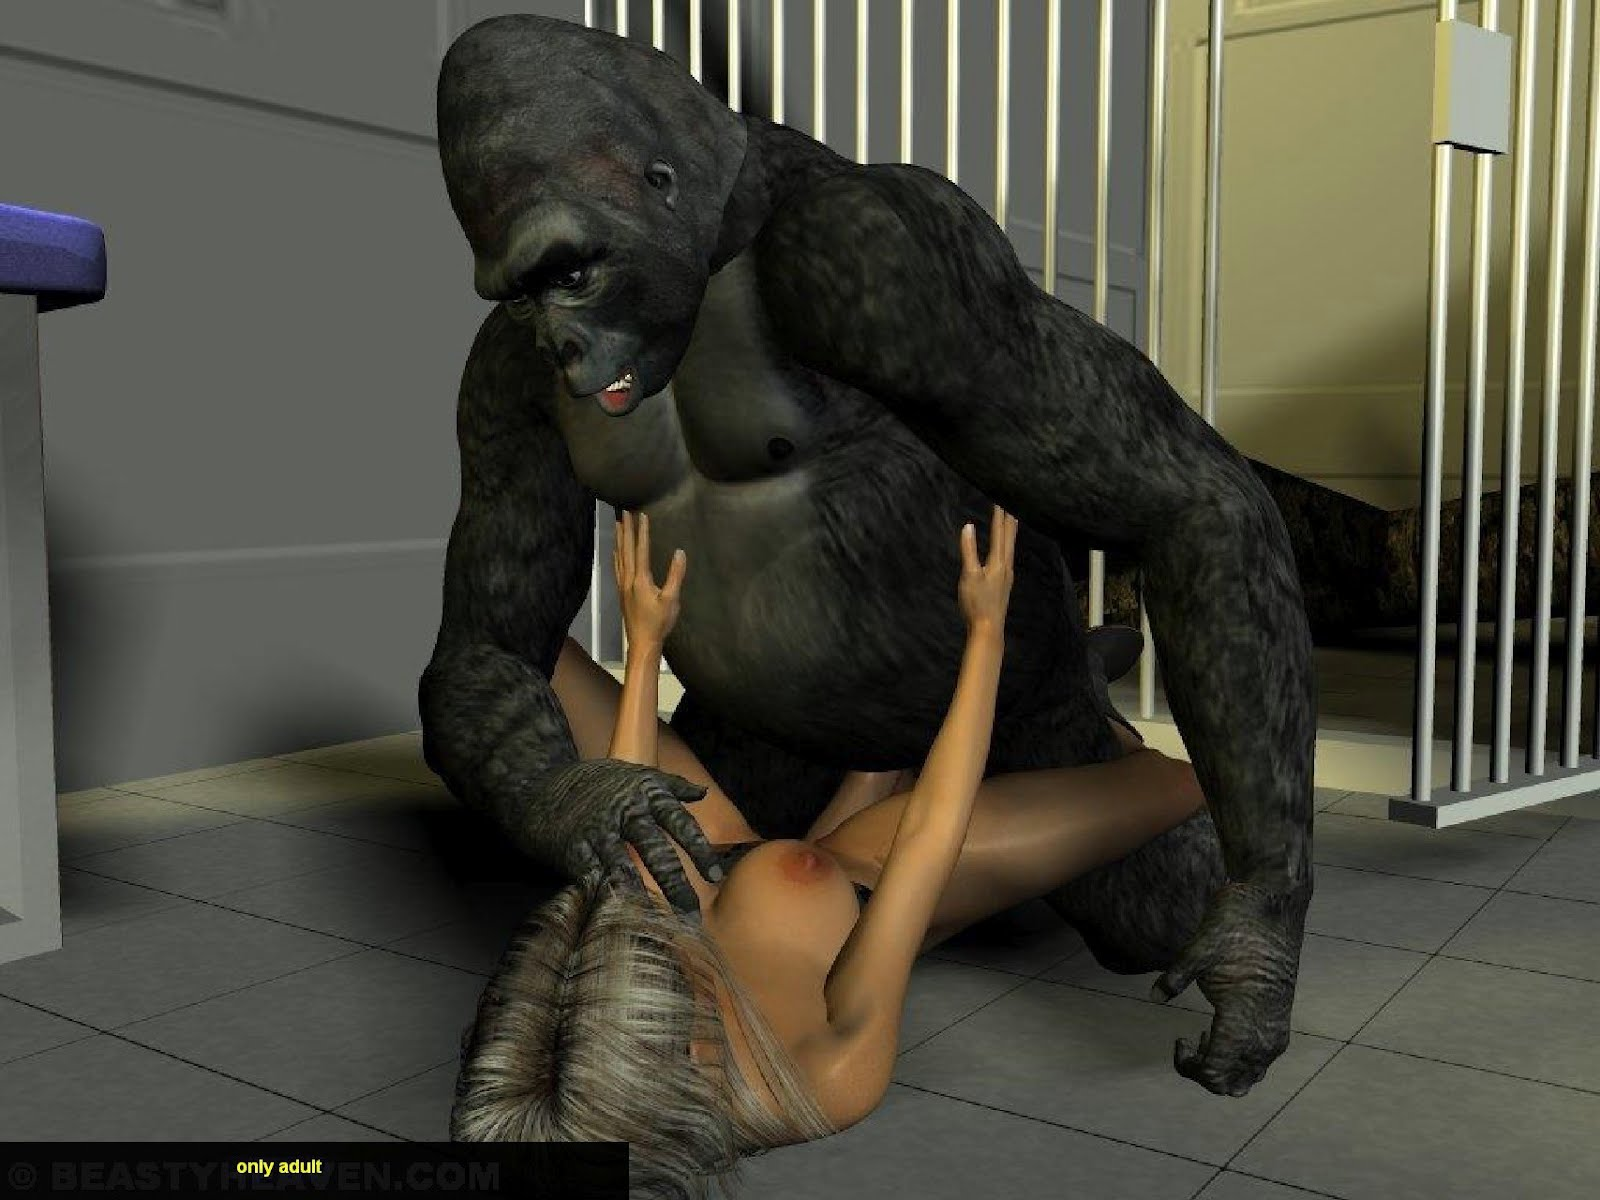 Human and gorilla sex video human and  porn scenes